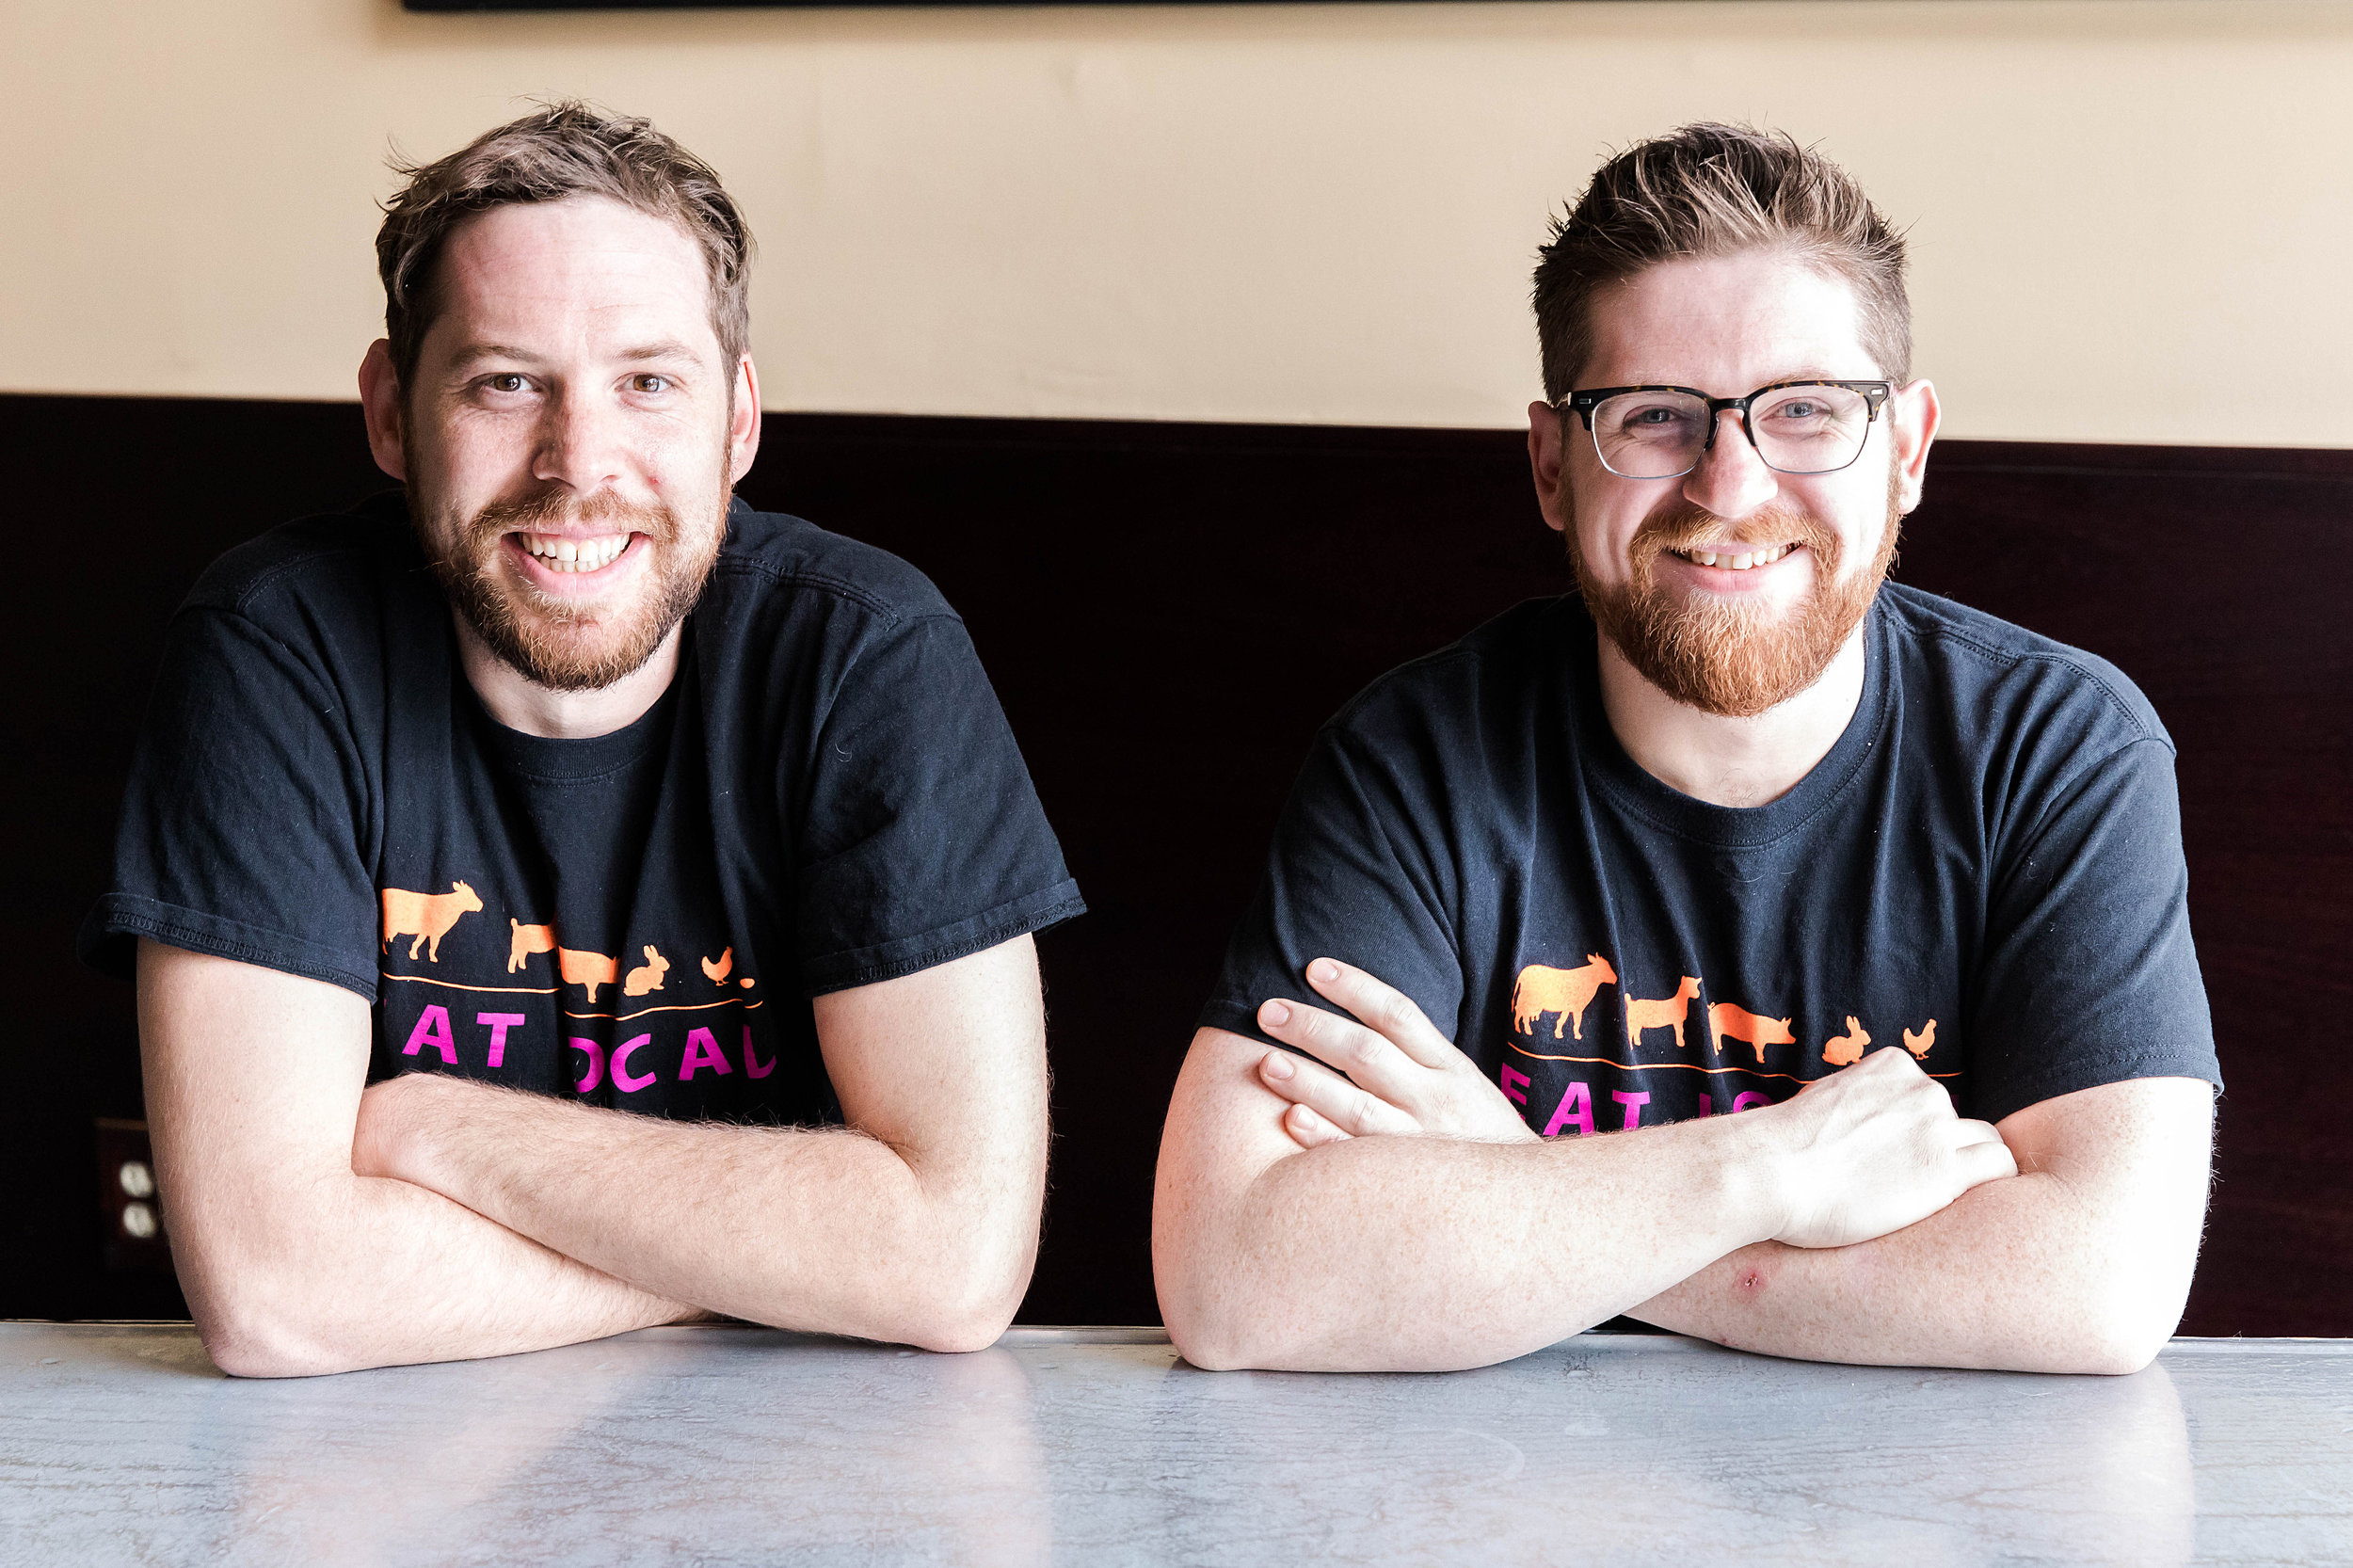 From left to right: Graydon Chapman, 32, originally from South Africa moved to New Haven a year and a half ago by way of Miami.Position at ZINC New Haven: Sous Chef.Ian Brown, 29, originally from Providence, Rhode Island.Position at ZINC New Haven: Grill and Sauté Cook.